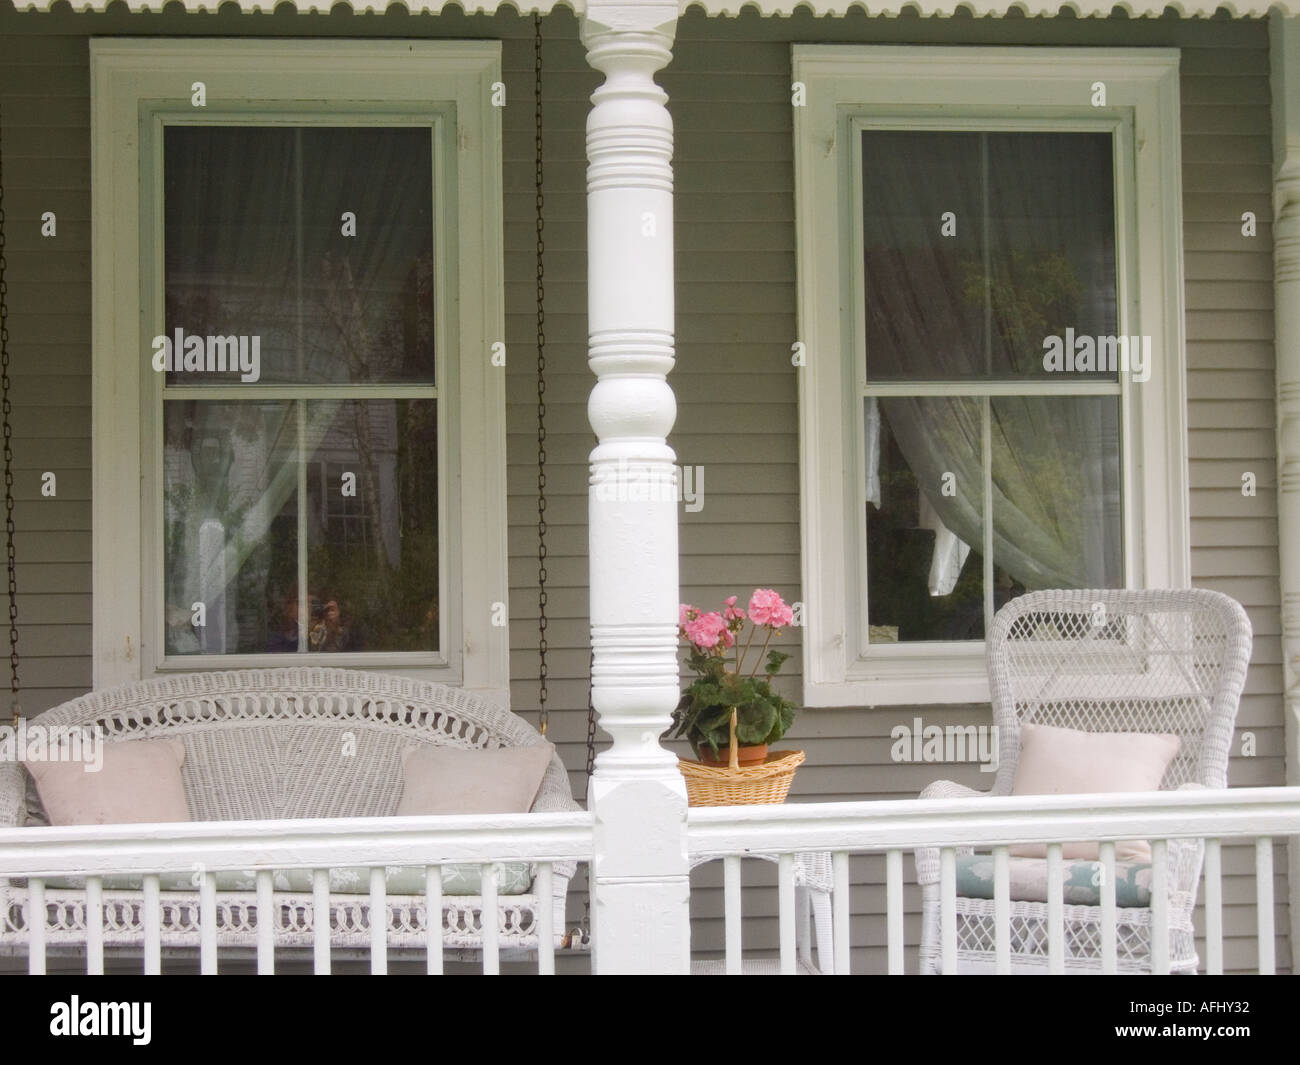 porch of a house in town of sandwich cape cod massachussetts united states of america - Stock Image